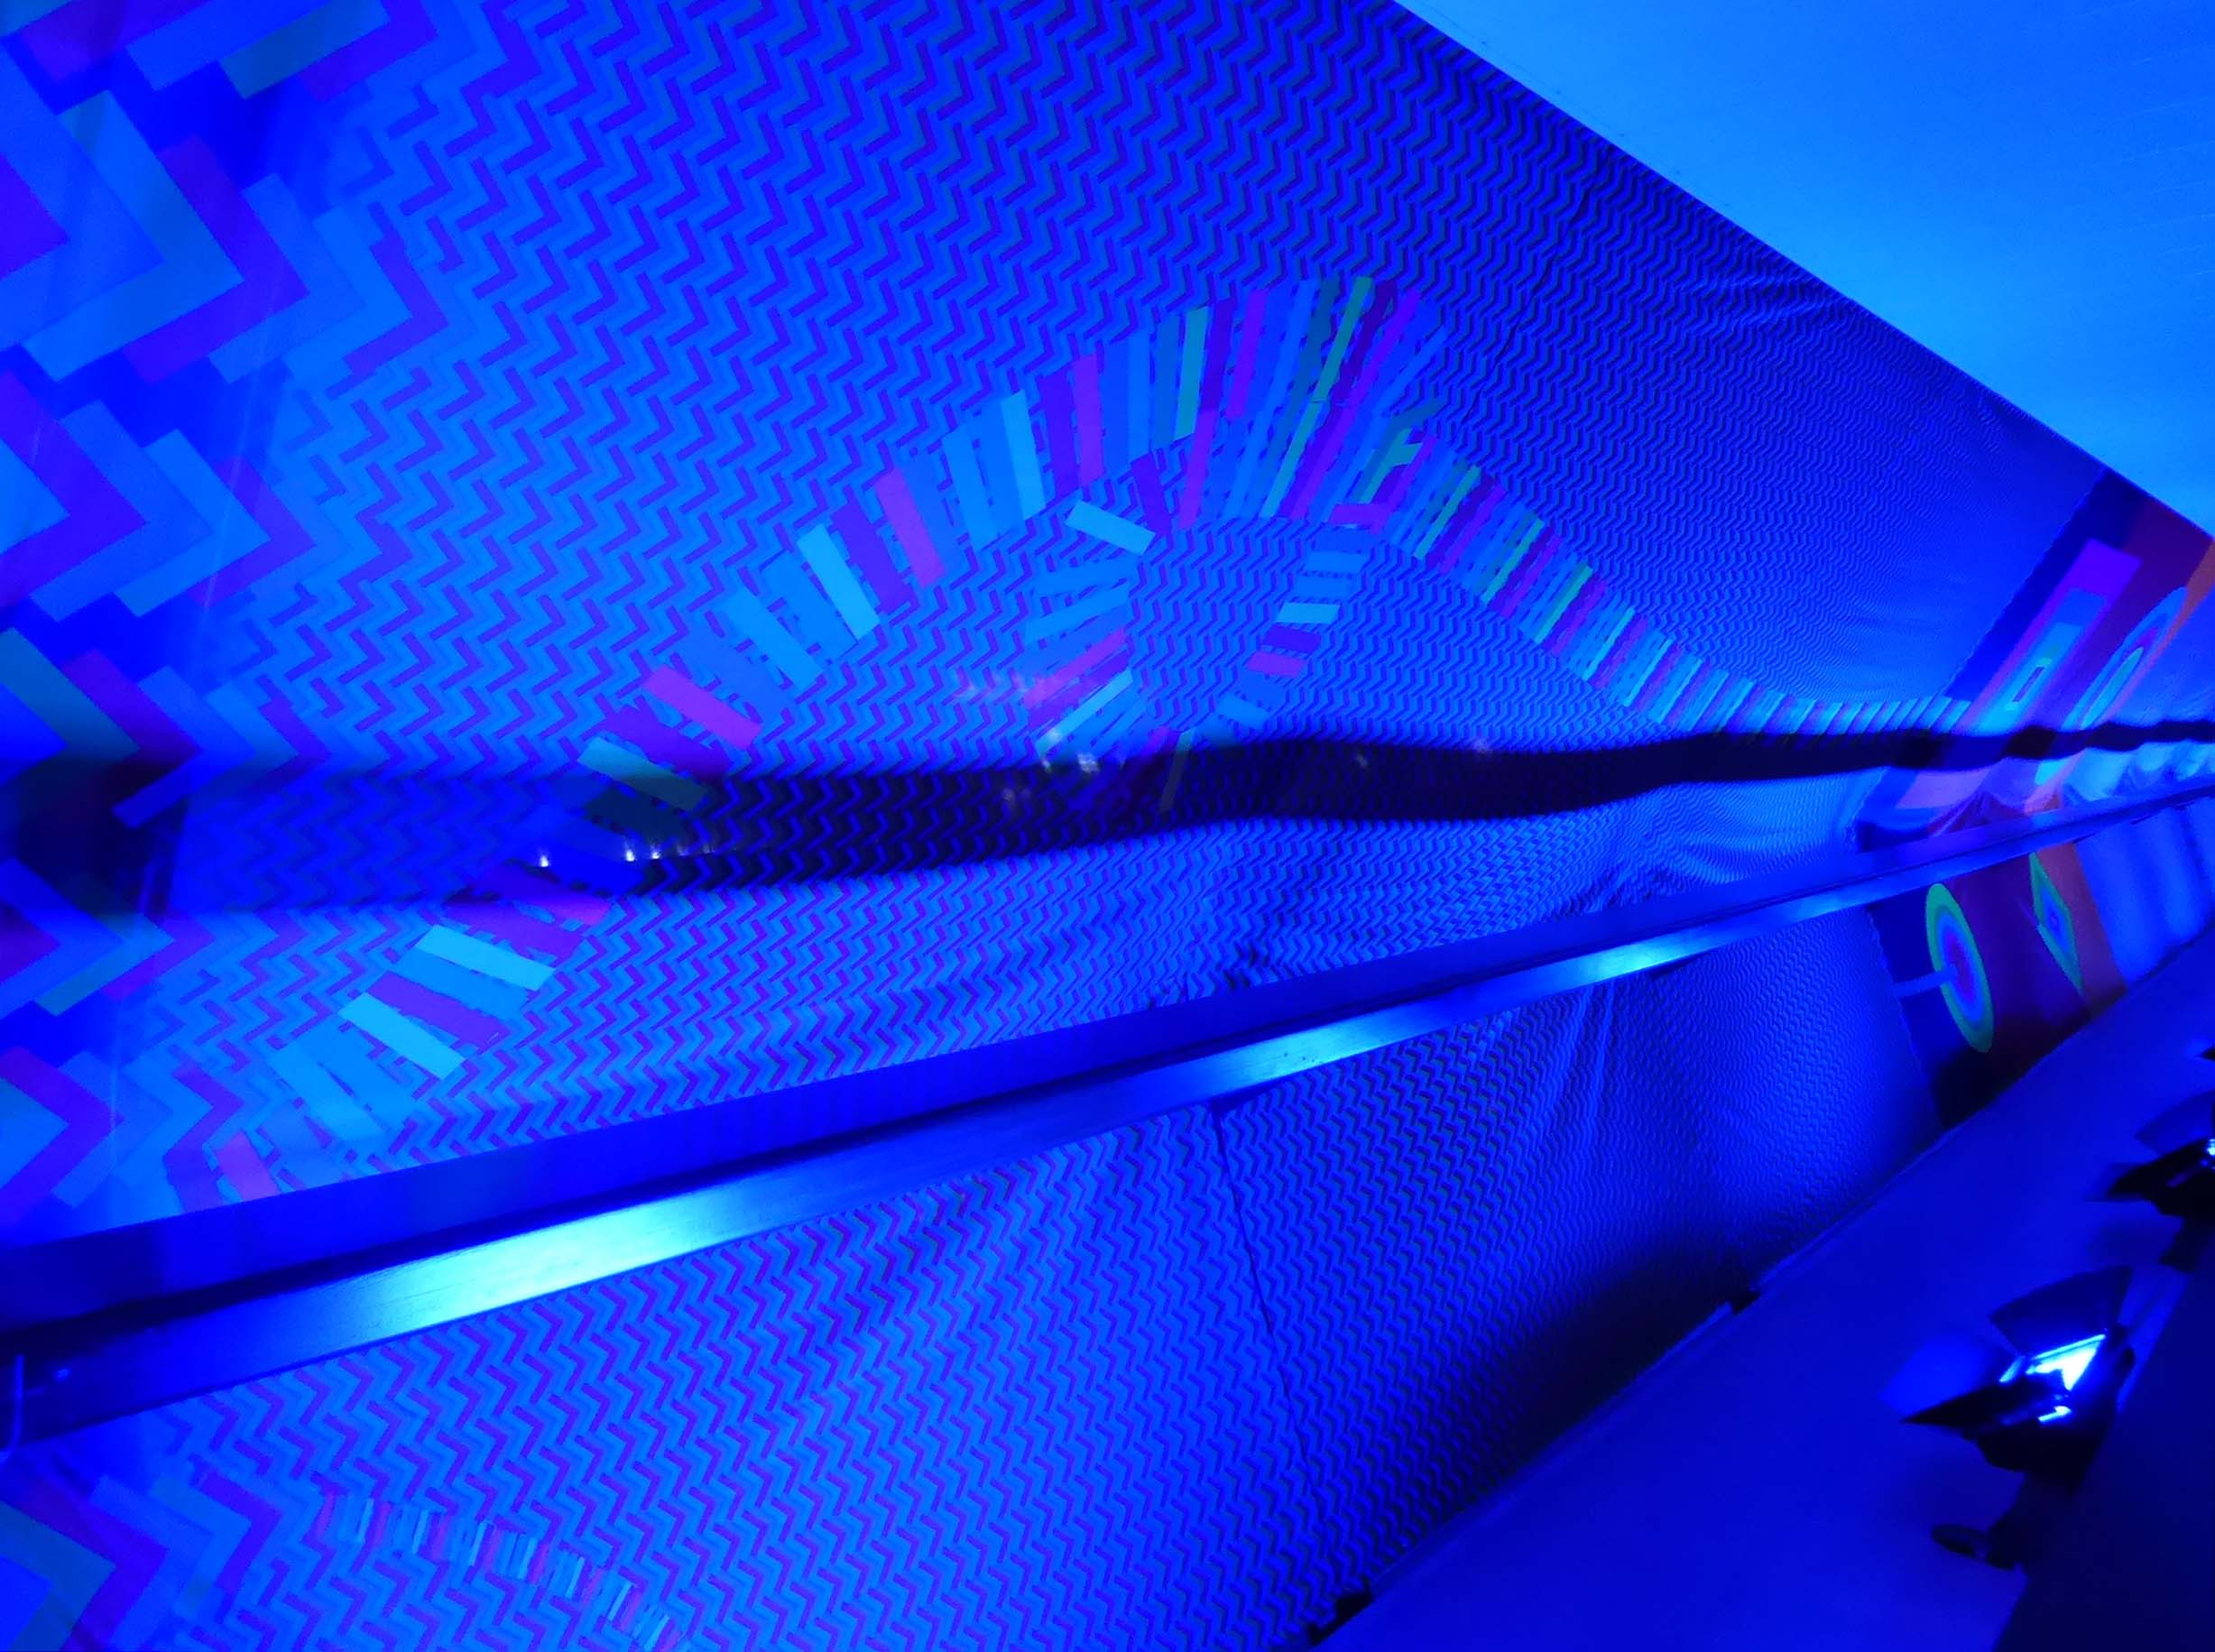 Tunnel lit with blue light